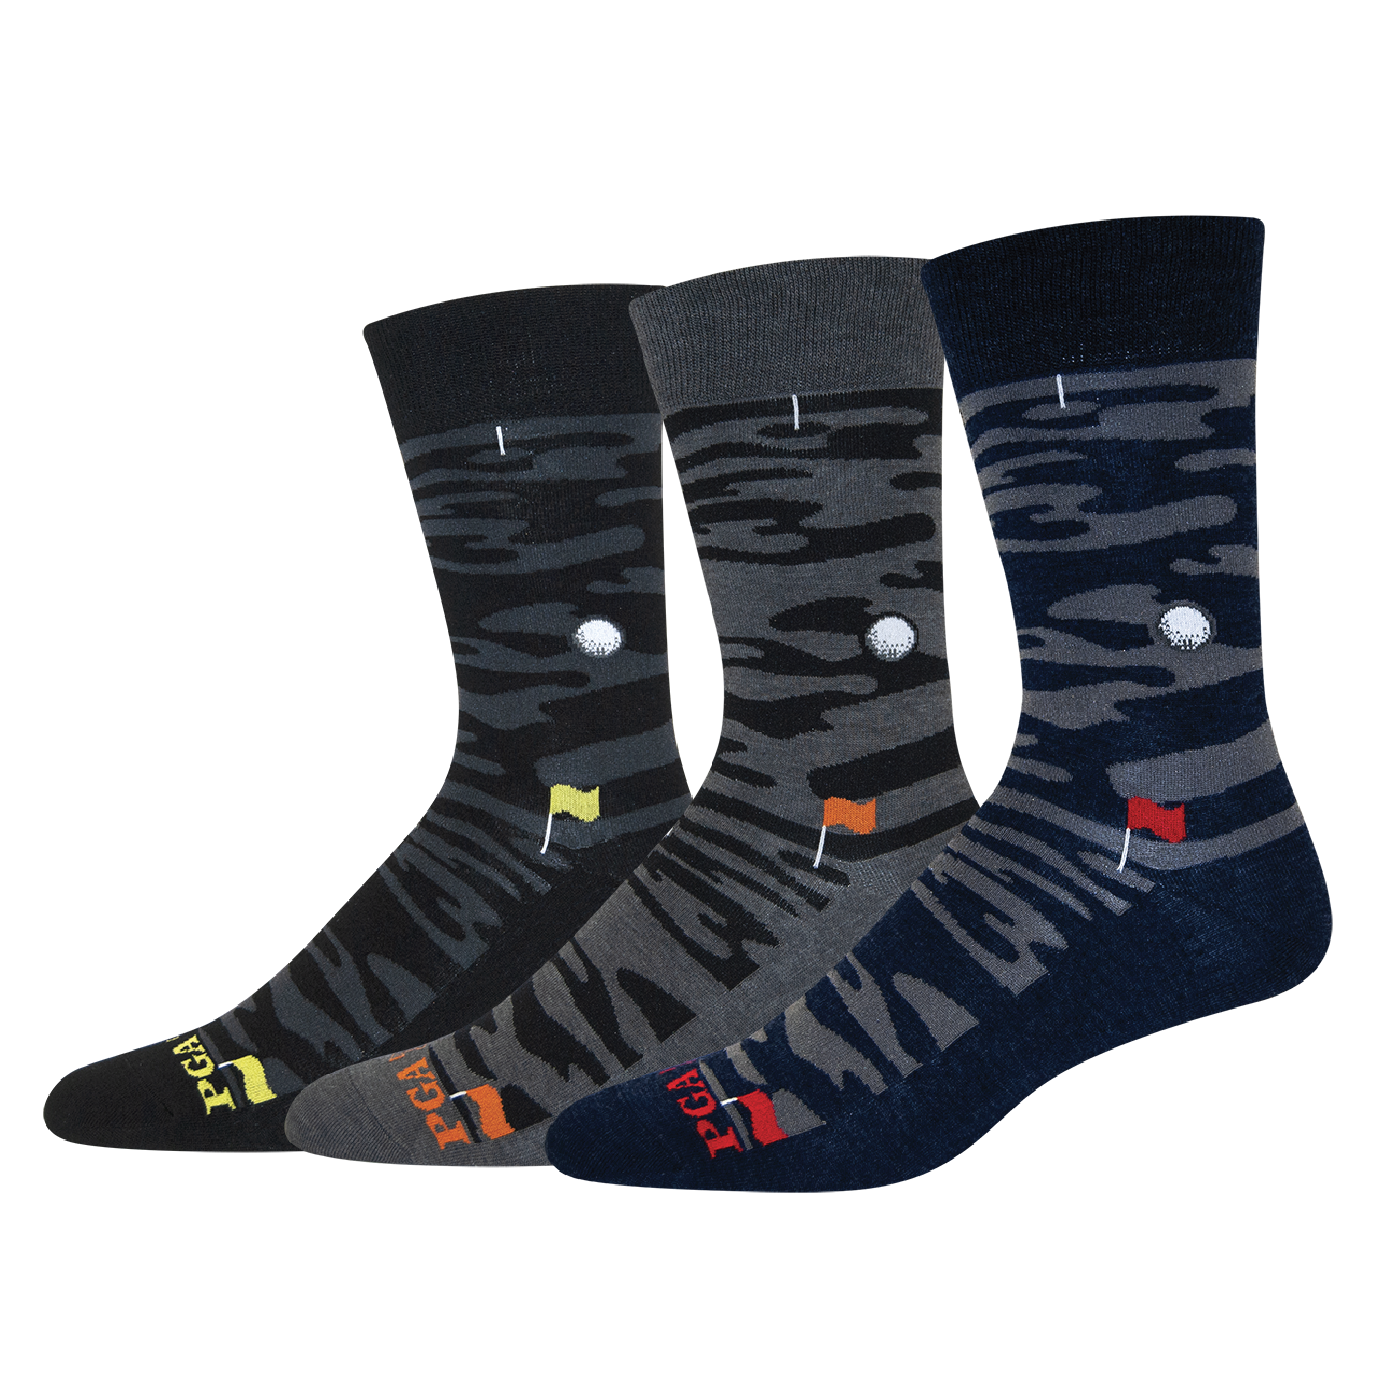 MENS CAMO GOLF CREW SOCKS